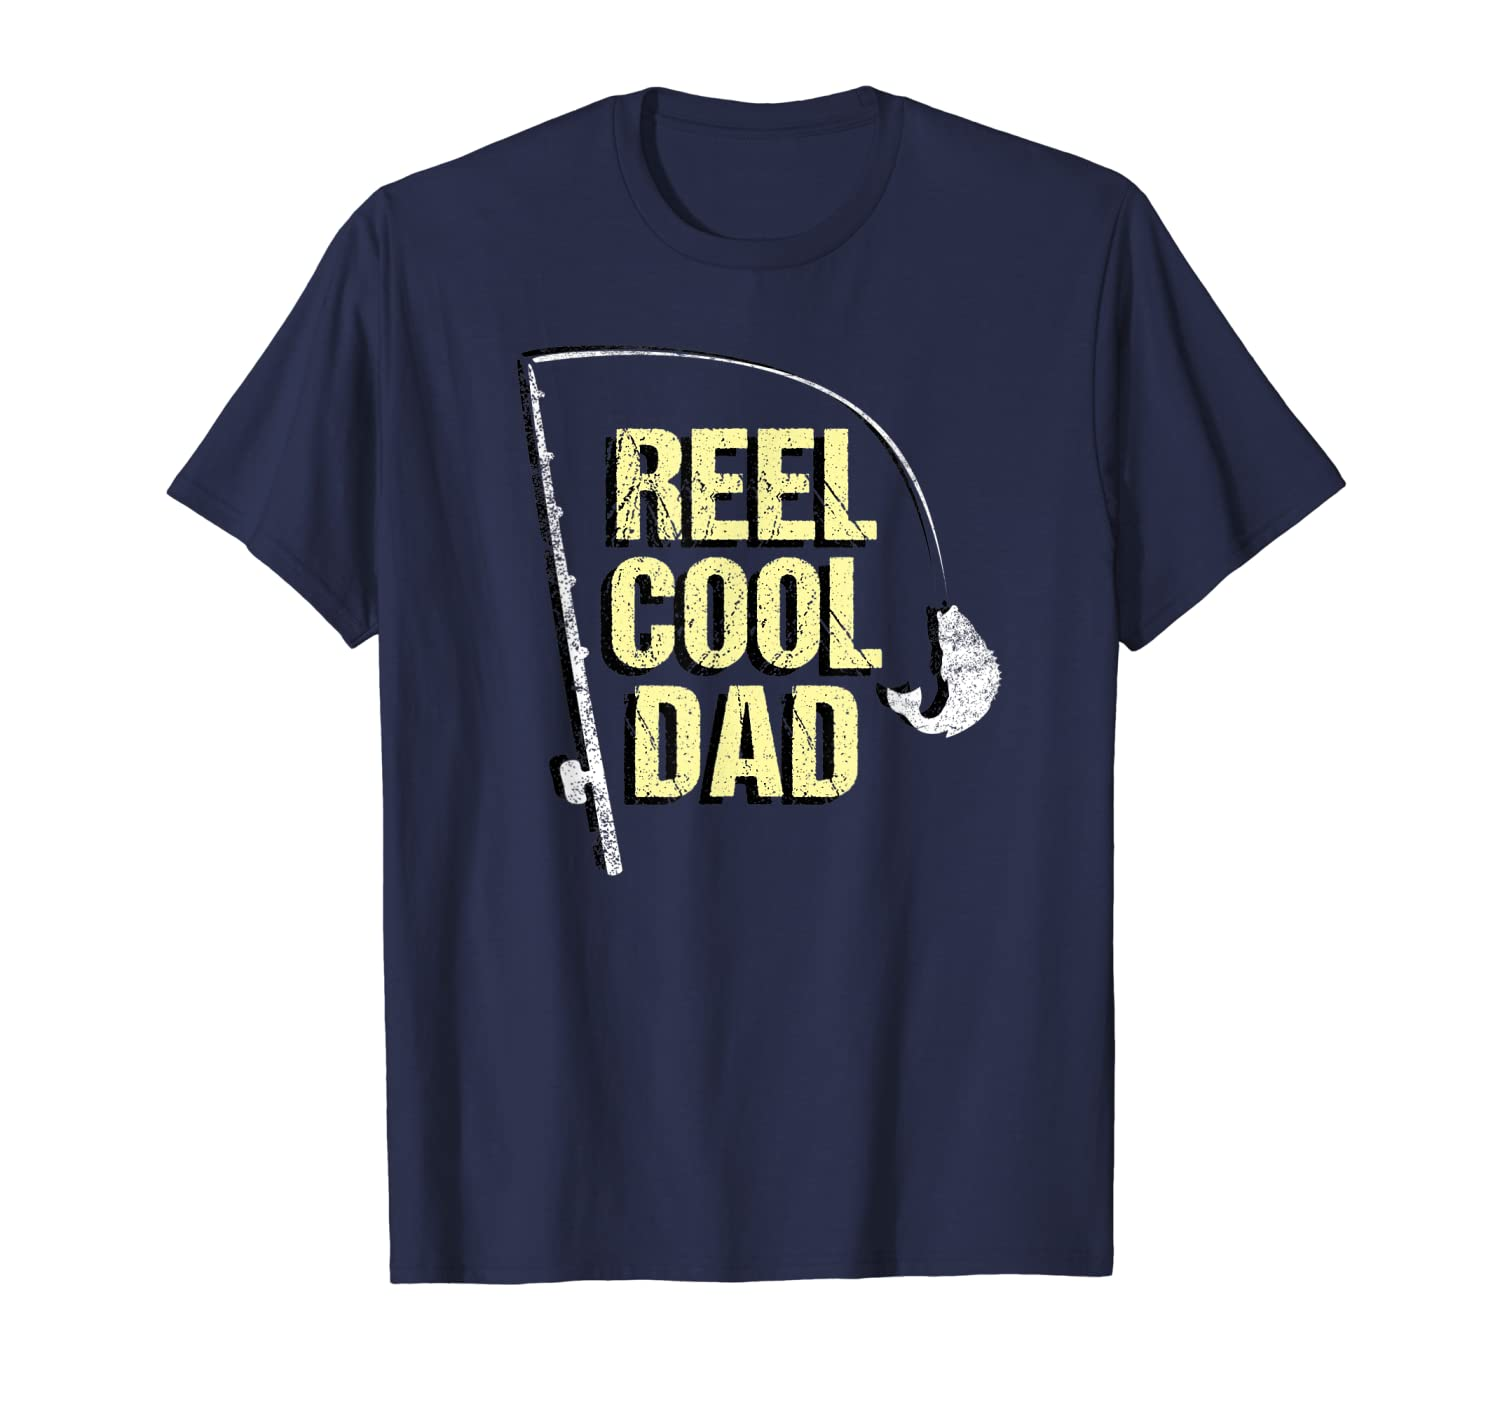 e4bb5c20 Amazon.com: Cool Fishing Dad Shirt Funny Fathers Day Gift for Fisherman:  Clothing